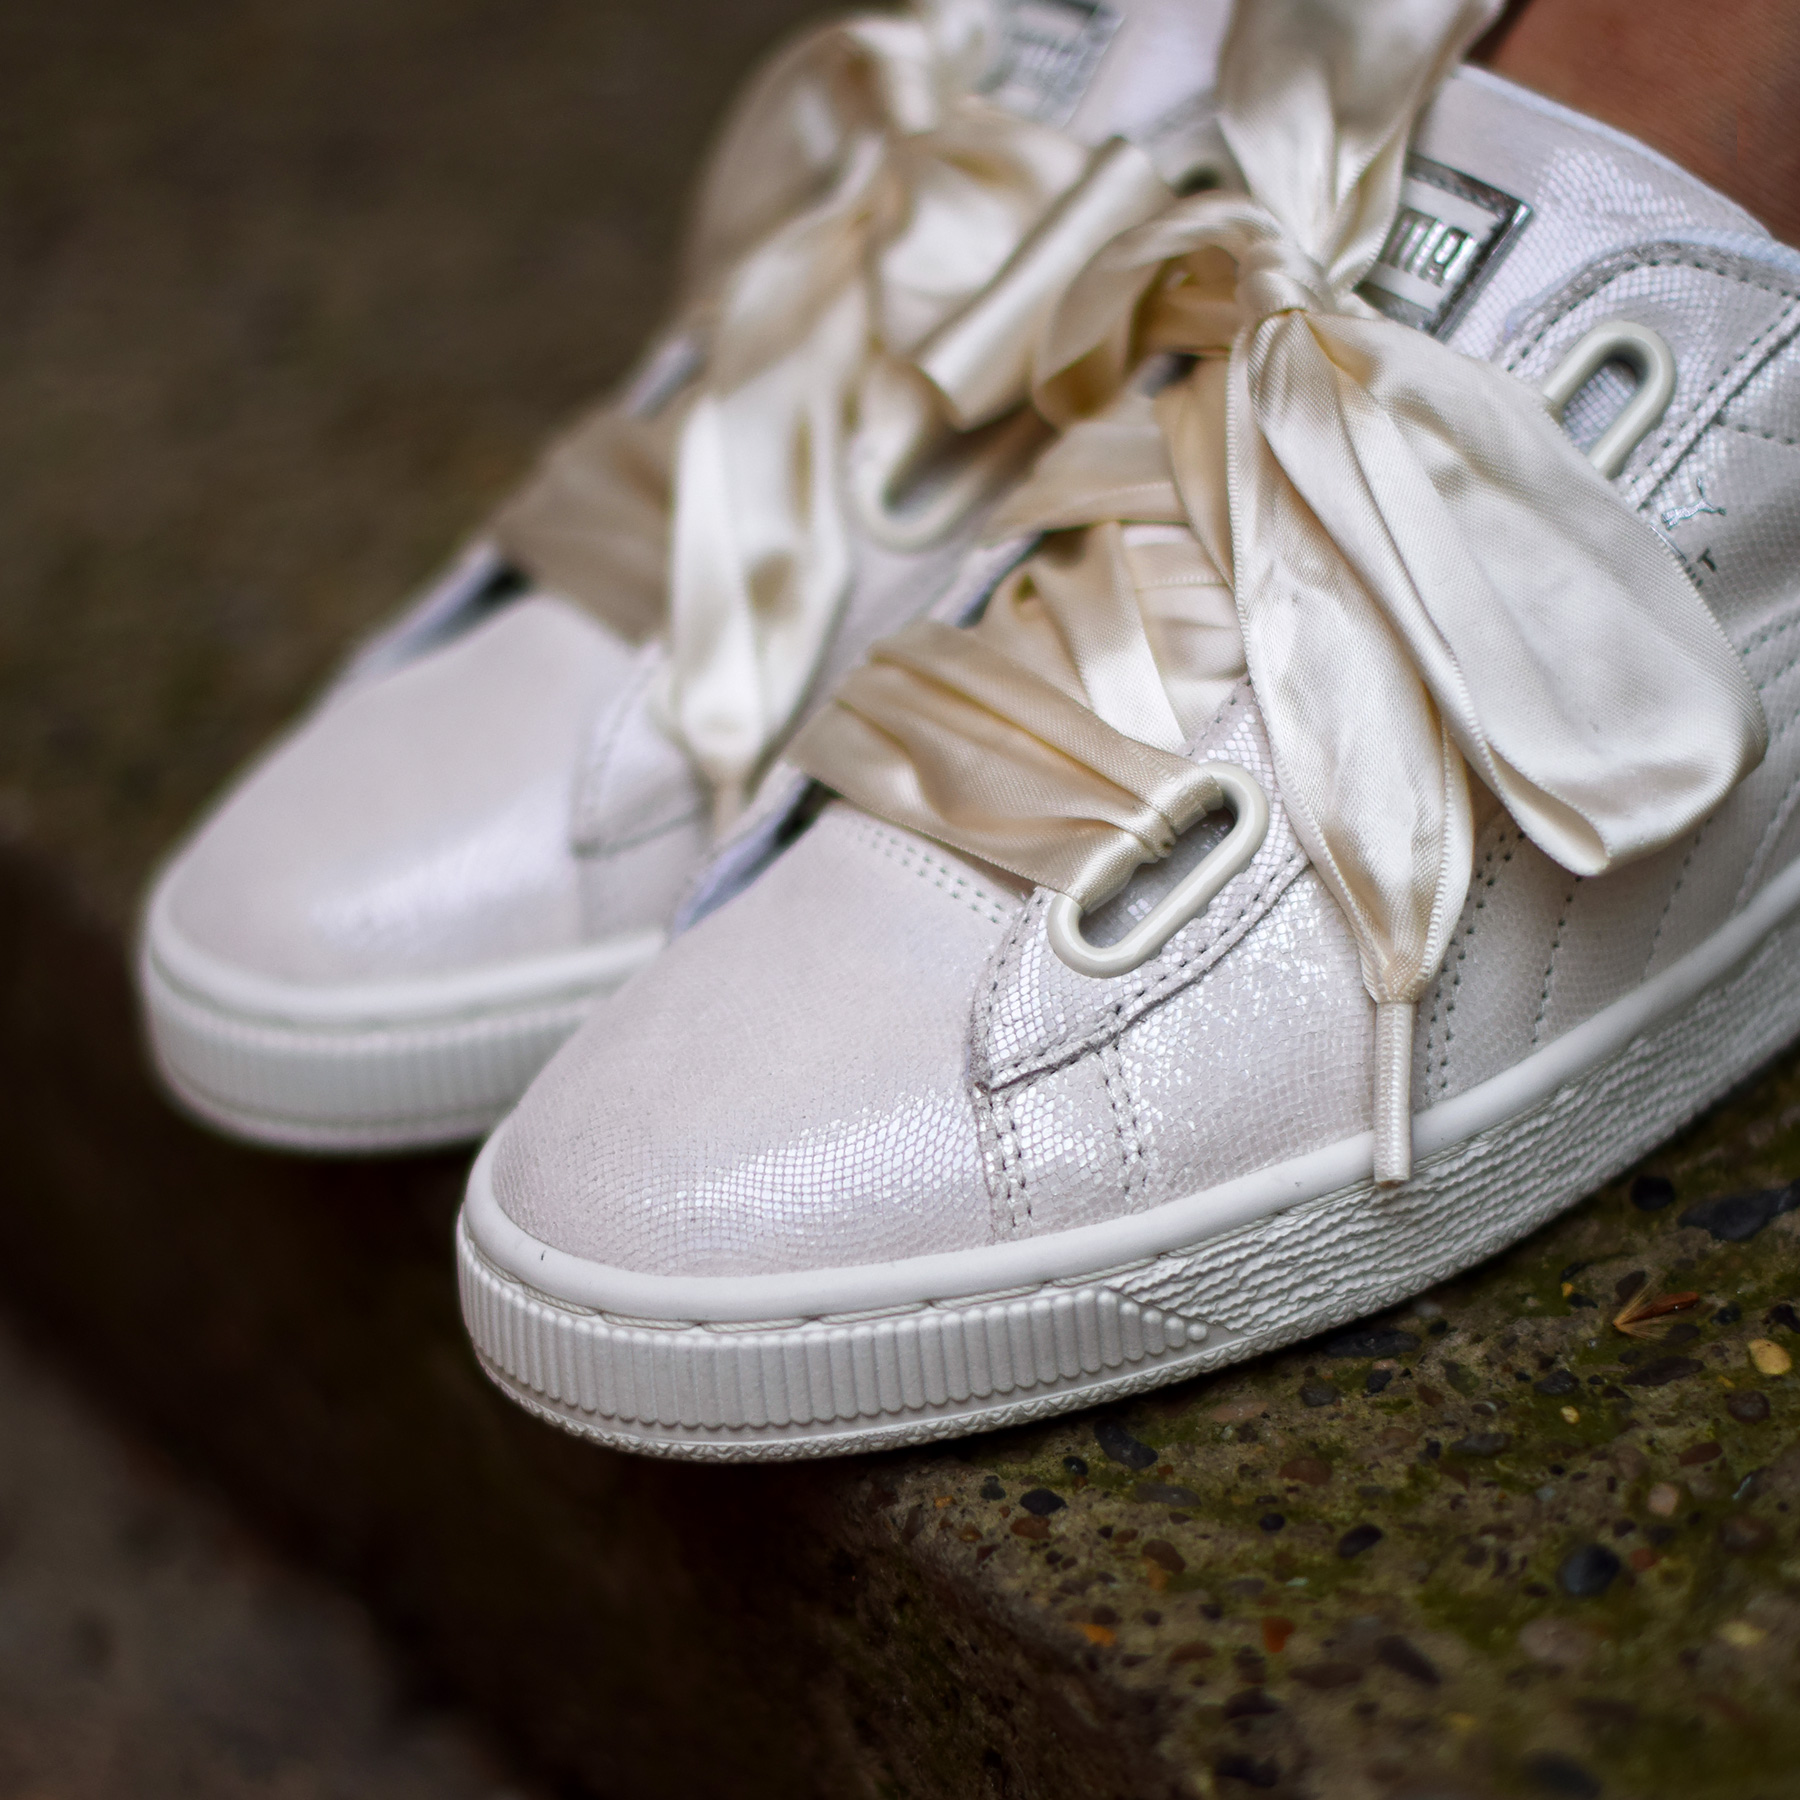 timeless design de11b 335d7 Puma Basket Heart Night Sky White - Sneakers.fr